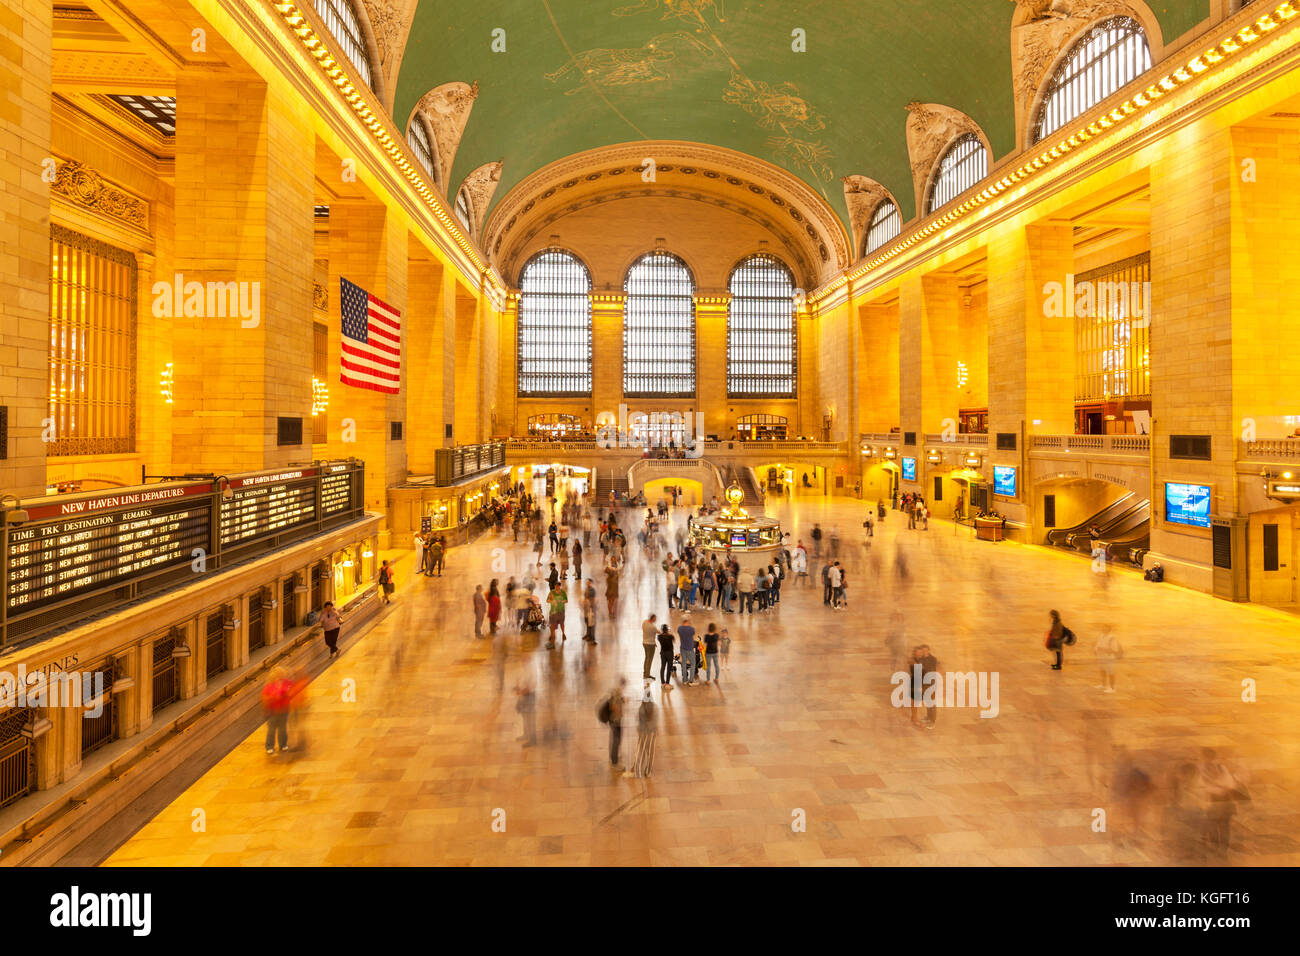 Grand Central Station Grand Central Terminal New york usa new york Grand Central Terminal new york city of new york - Stock Image